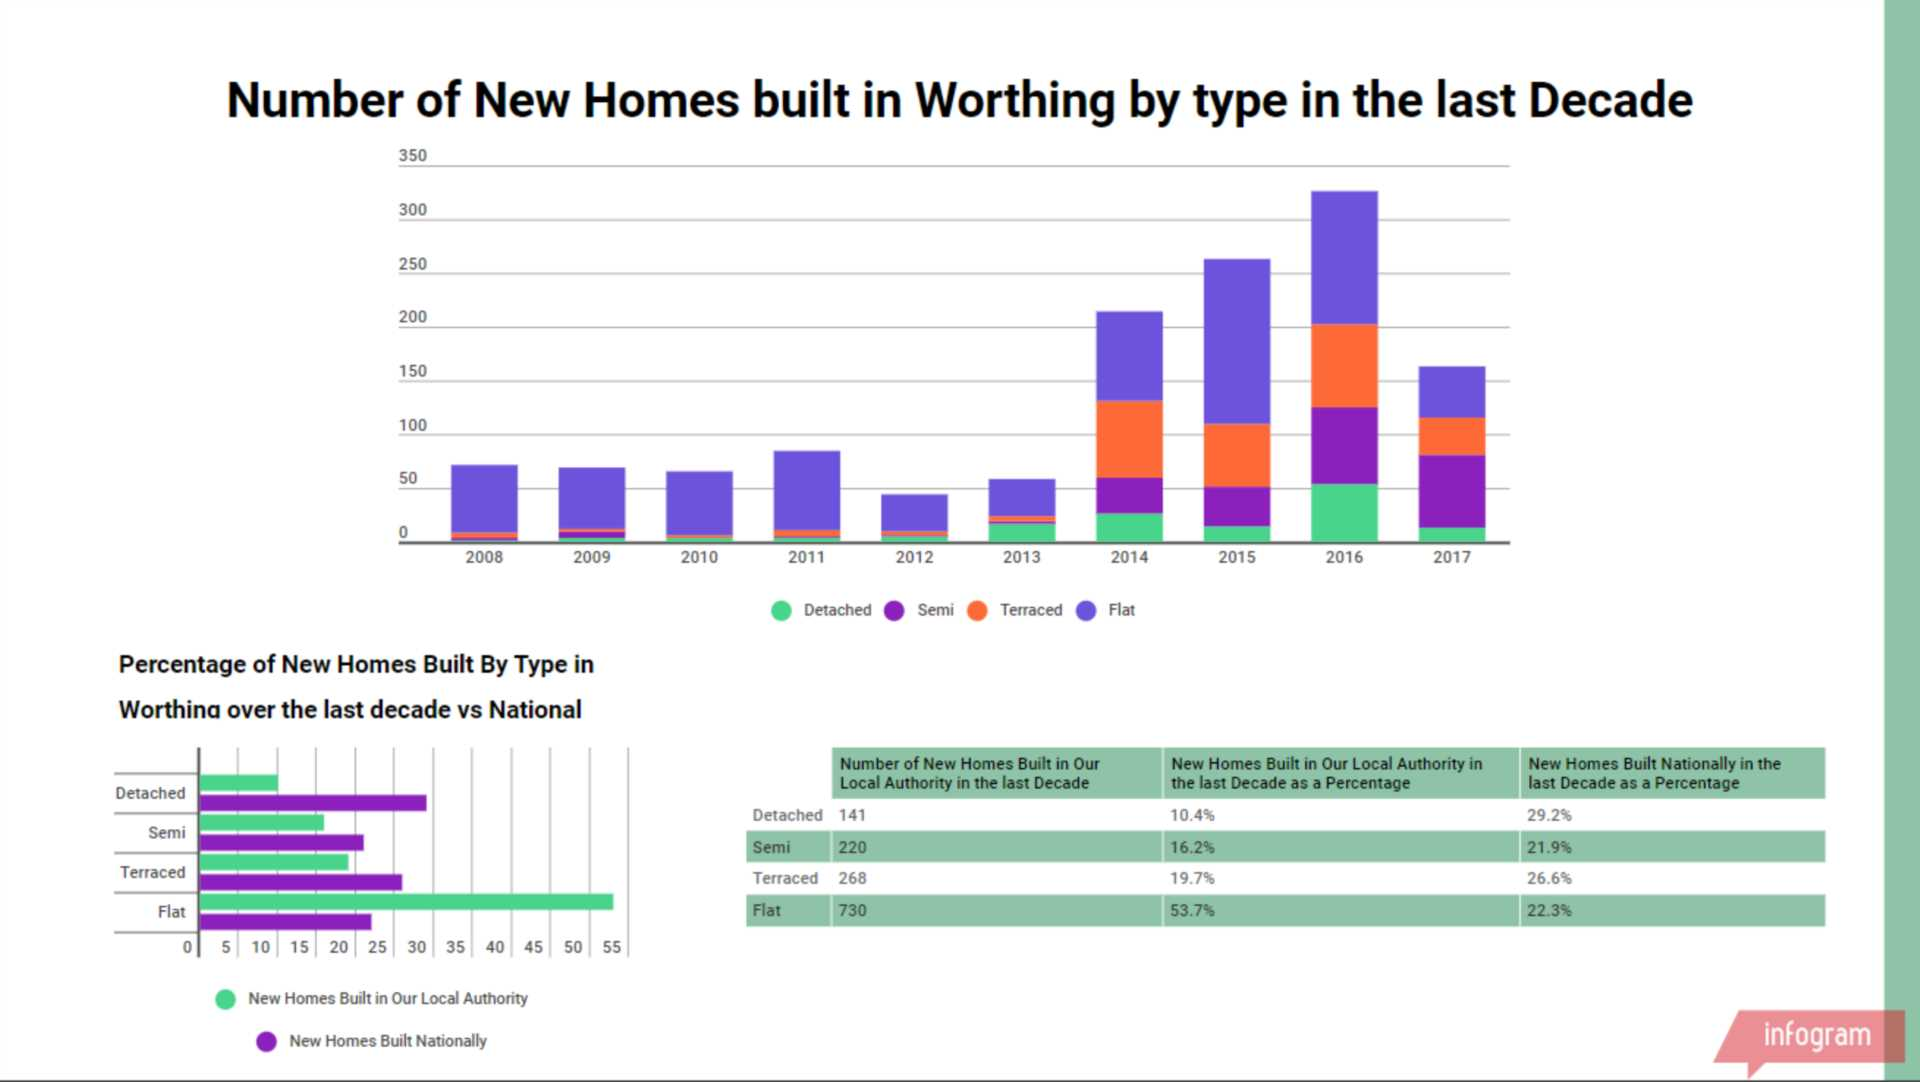 New Home Building in Worthing over the last 10 years